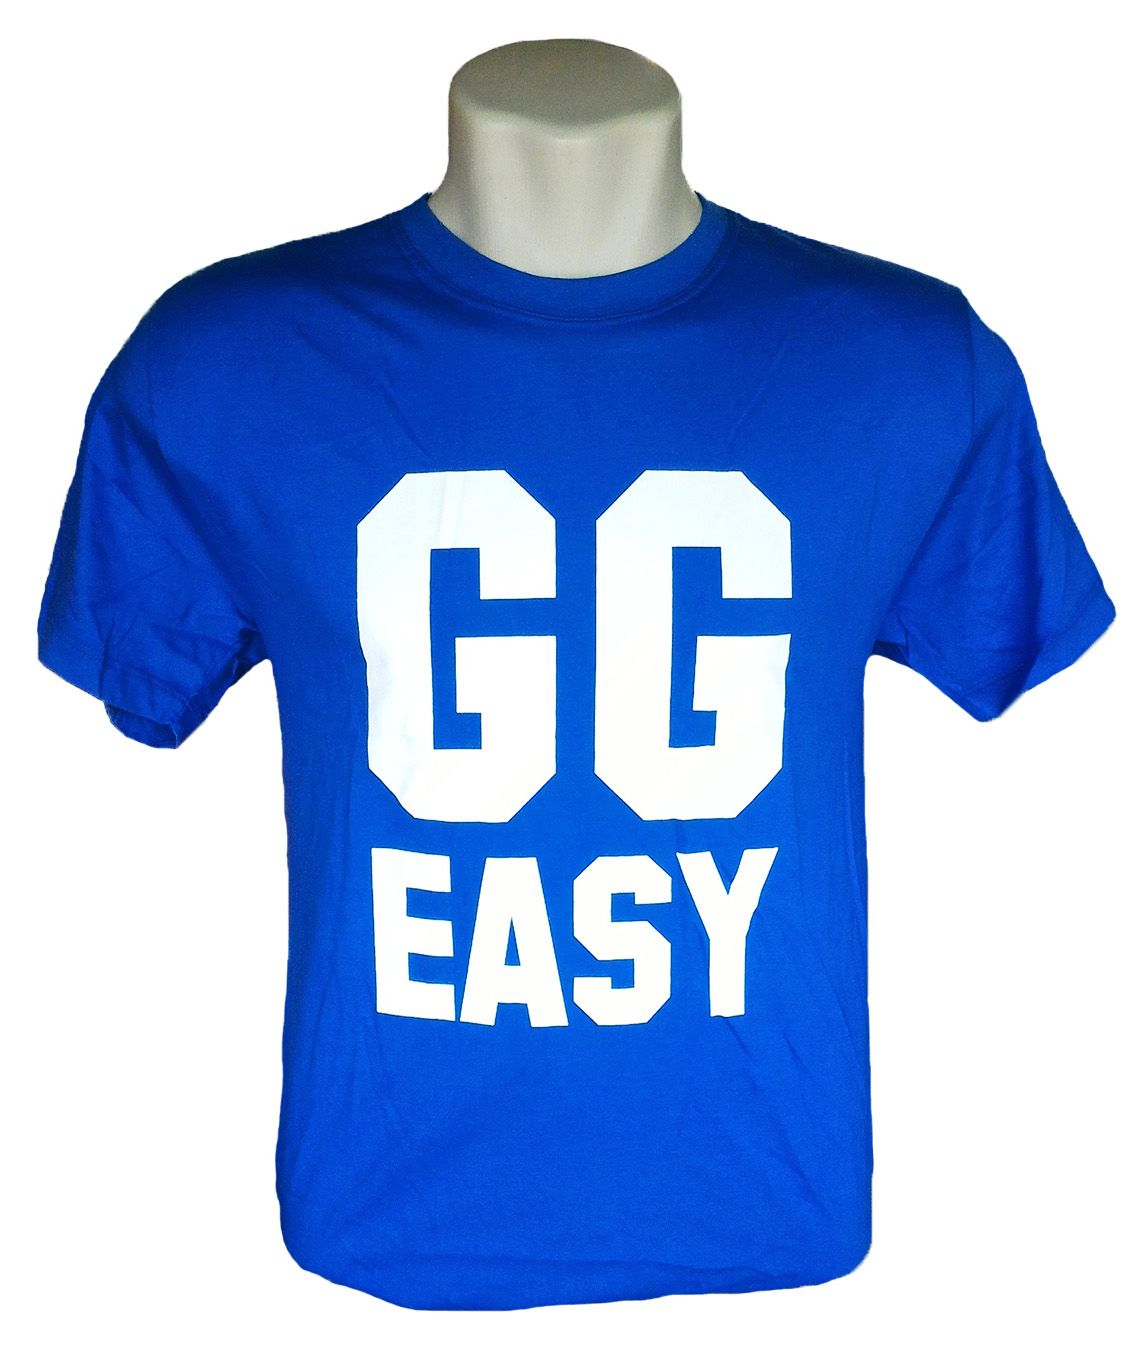 Camiseta GG Easy